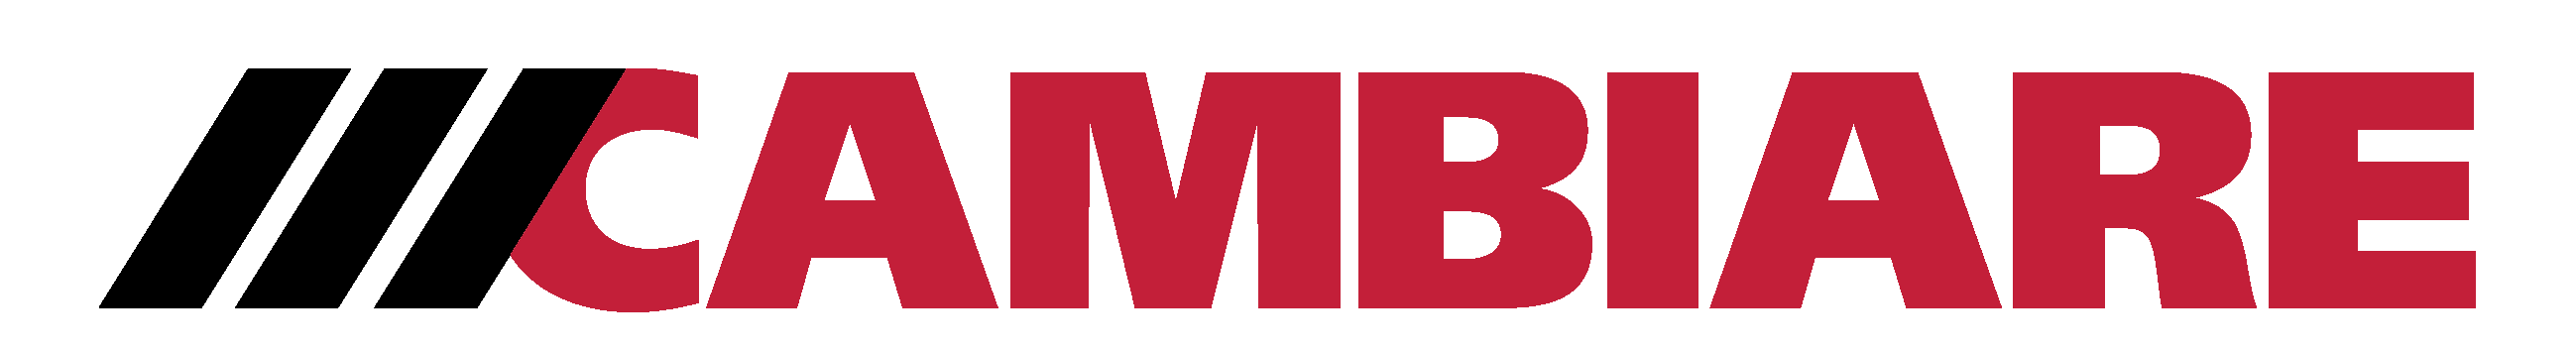 Cambiare PNG